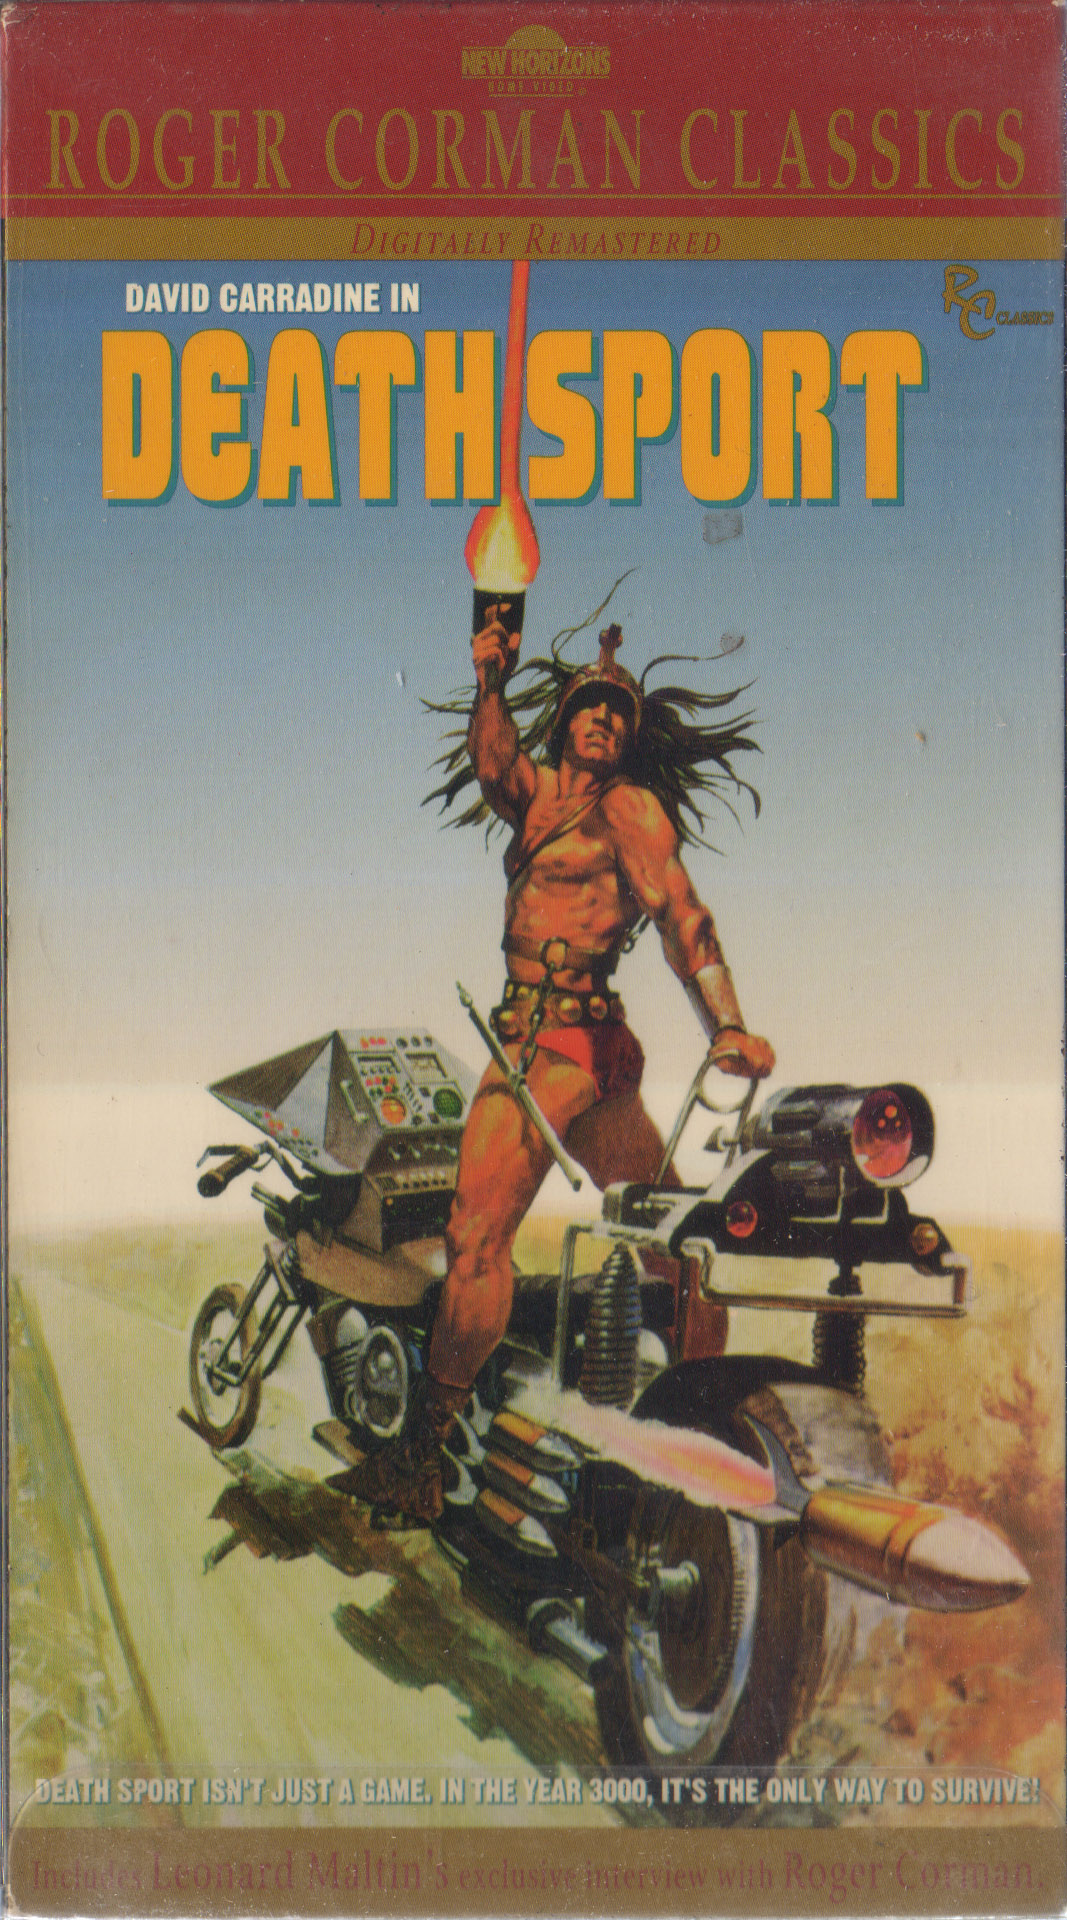 vhs covers illustrations 14